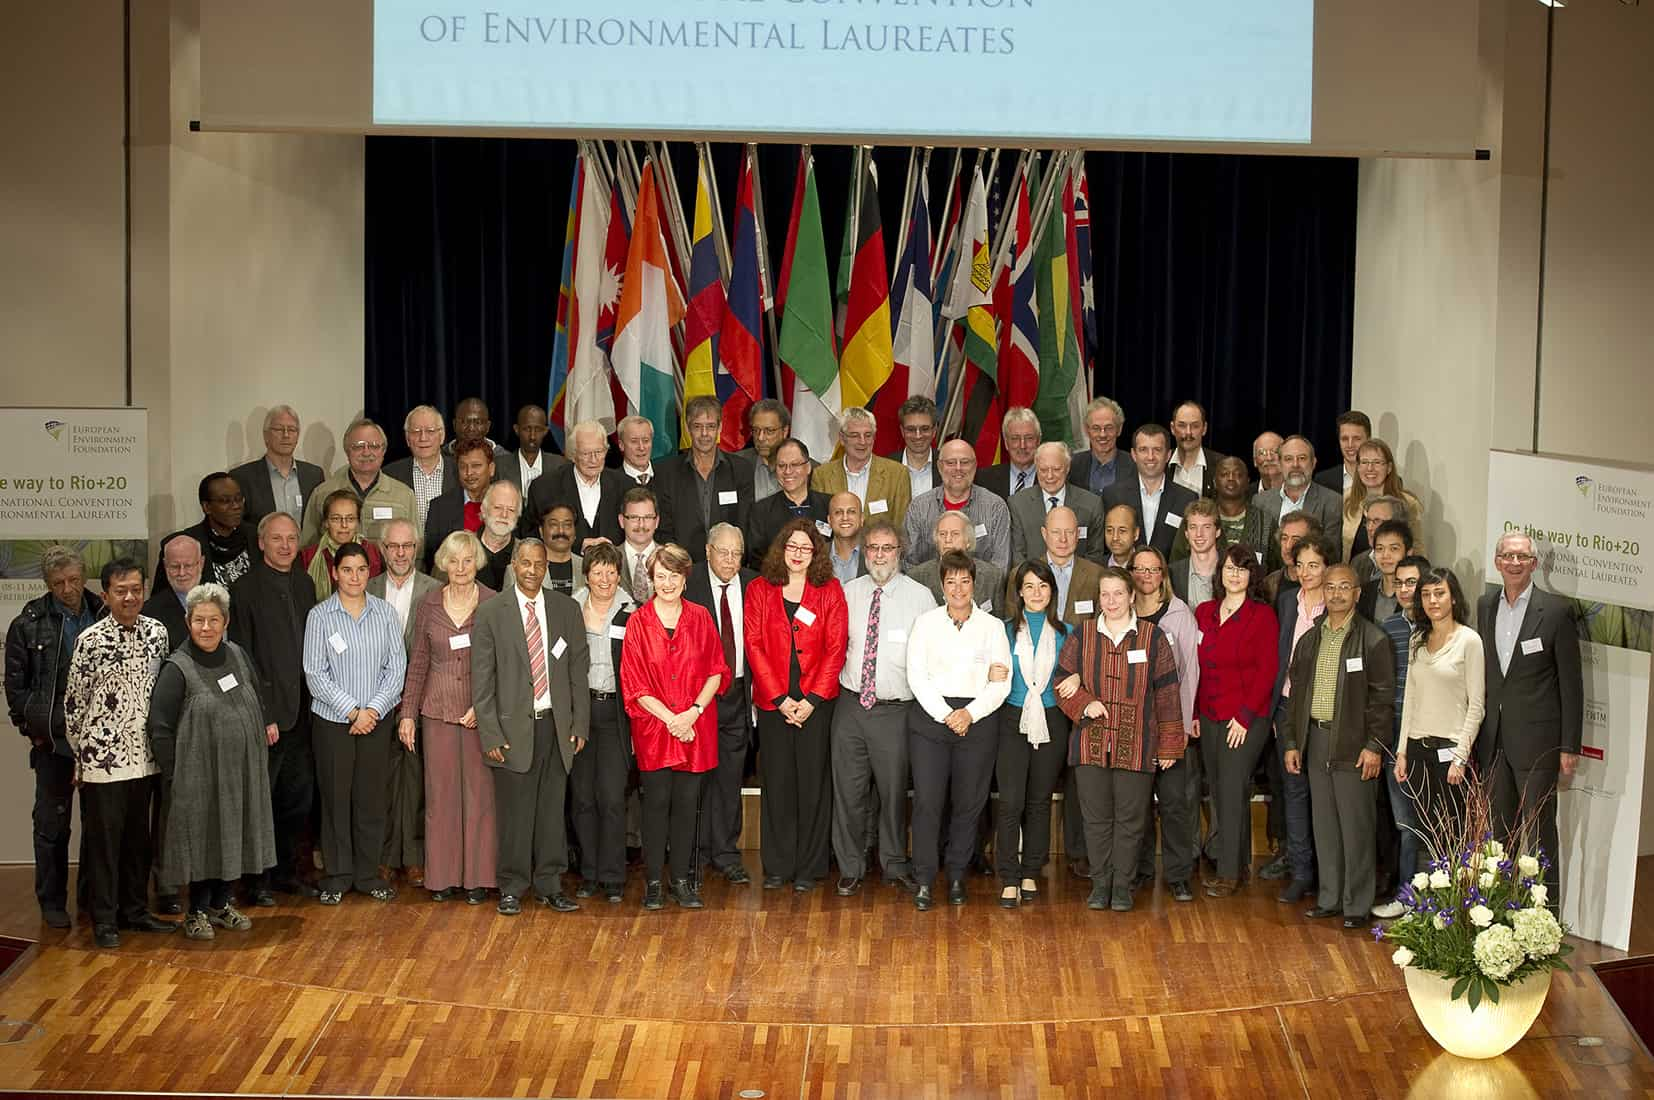 2012: Group photograph at the European Environment Foundation's congress in Freiburg.